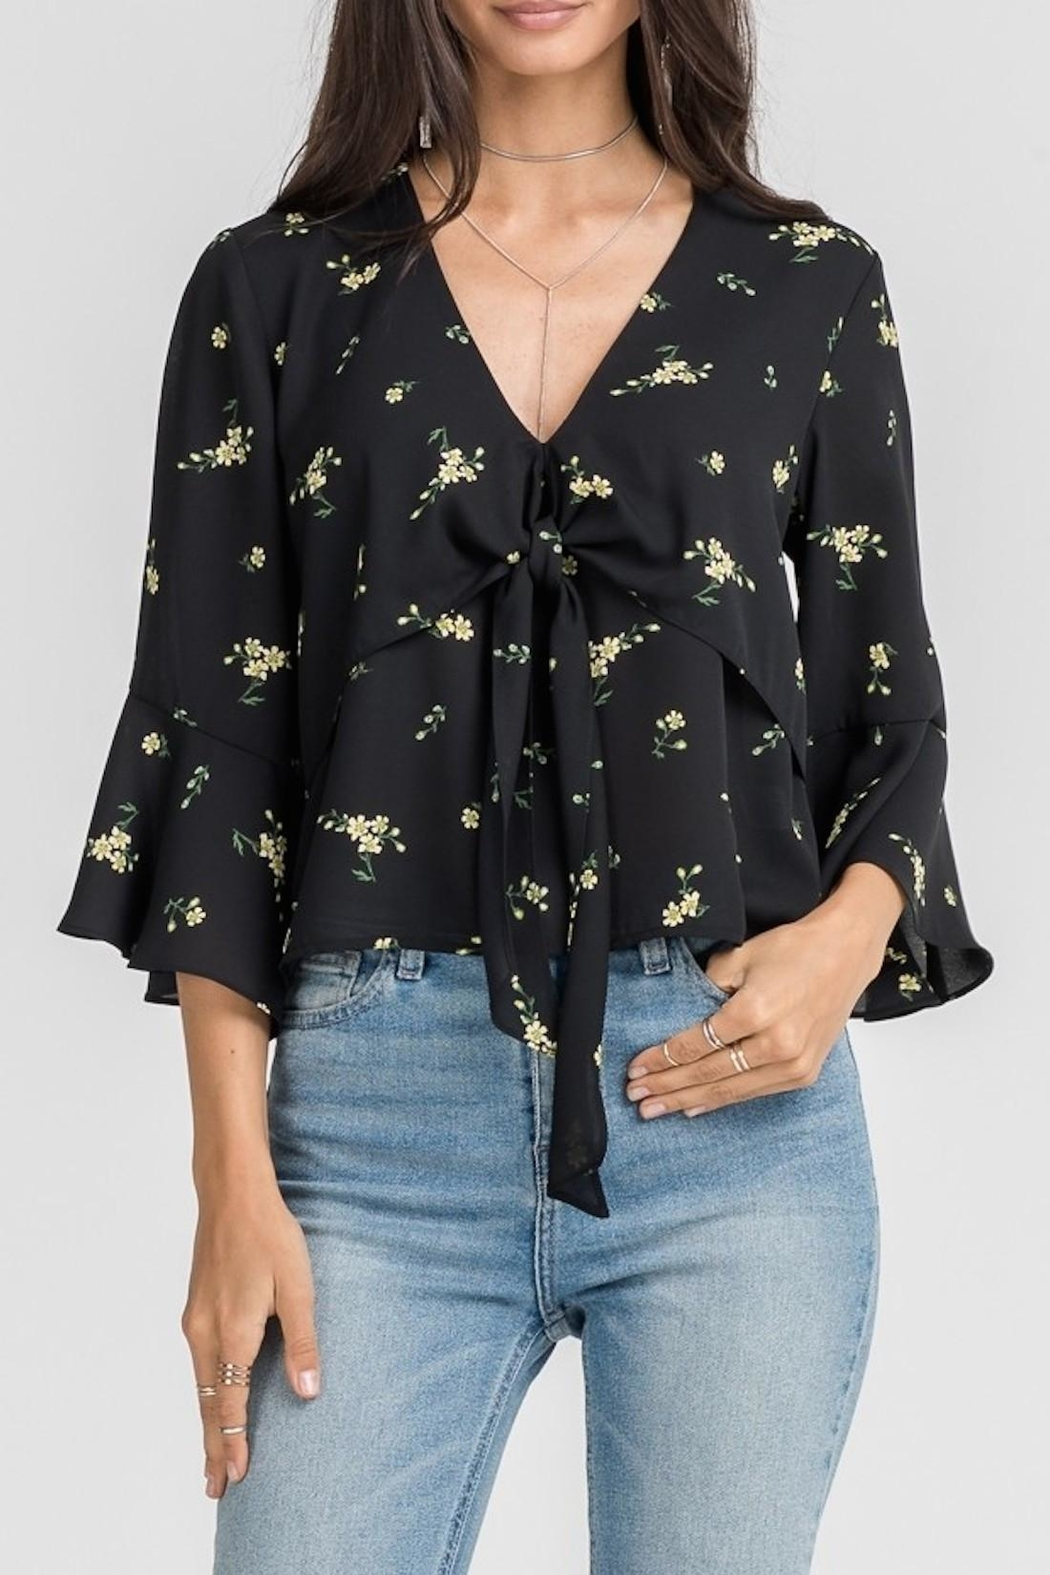 Lush Clothing  Black Floral Blouse - Front Cropped Image